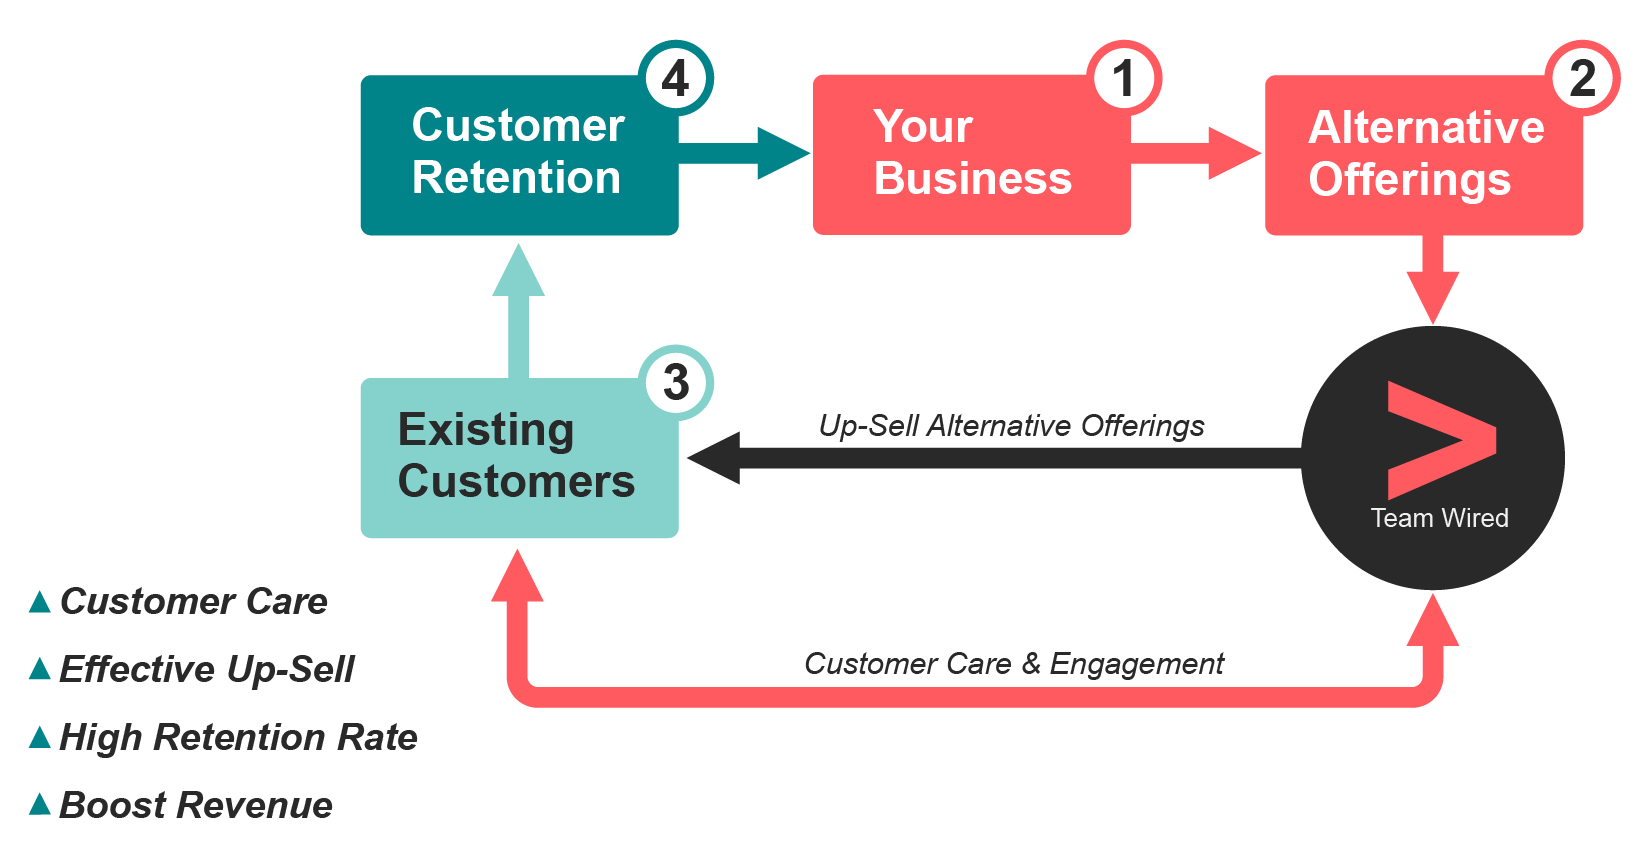 Team-Wired-Outbound-Sales-Diagram-03-01.png